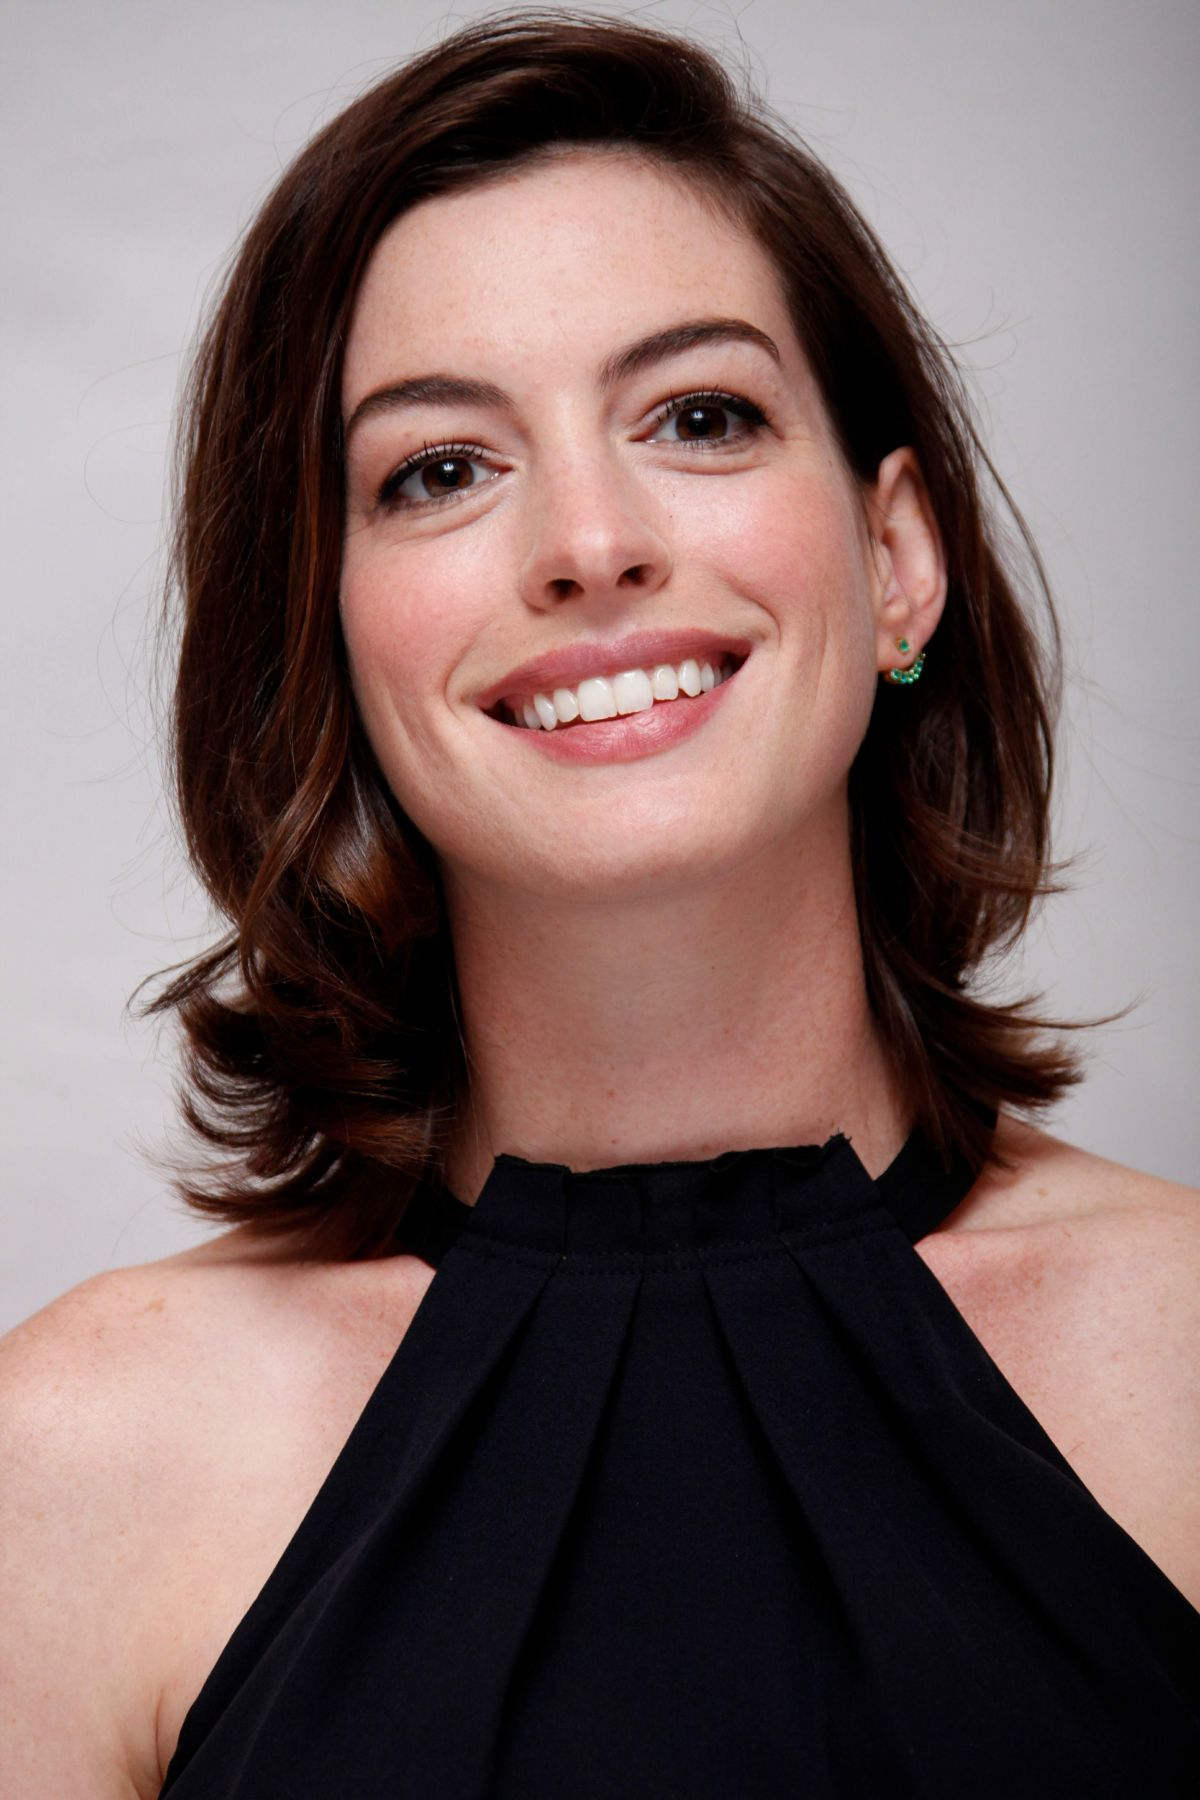 ANNE HATHAWAY at The Intern Press Conference in Los Angeles ... Anne Hathaway